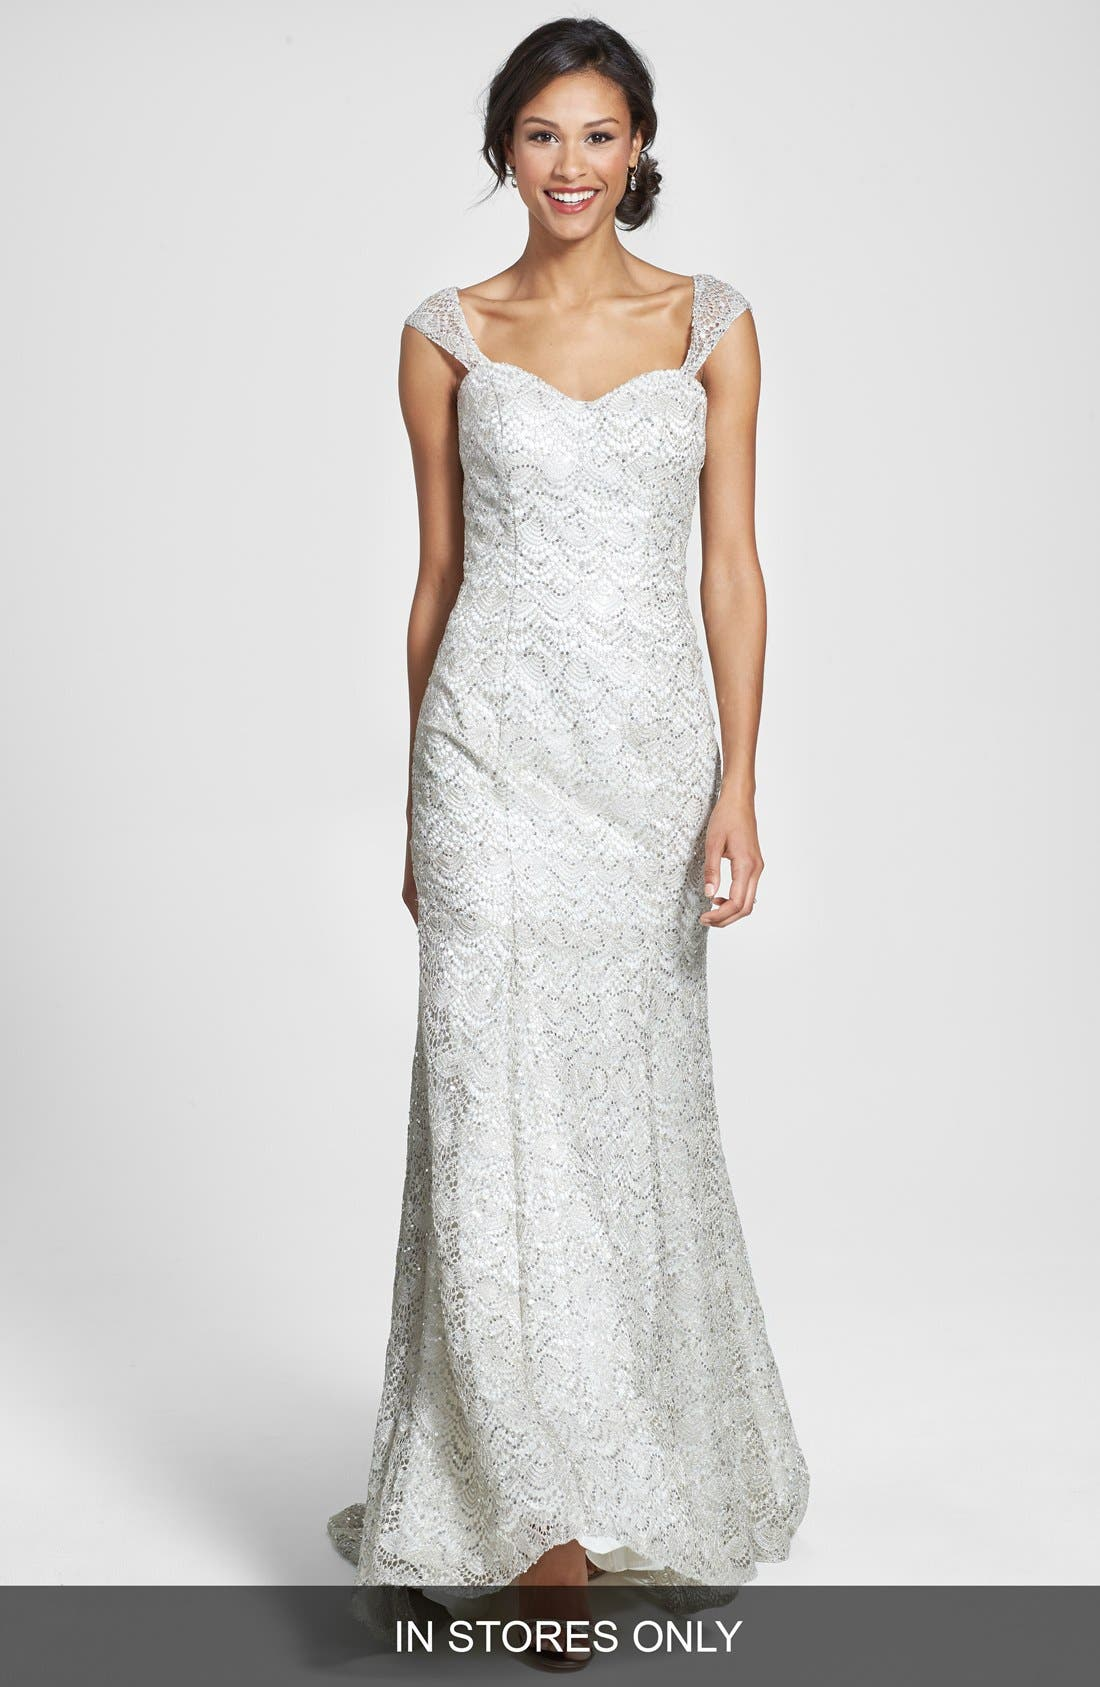 Alternate Image 1 Selected - Olia Zavozina Beaded Metallic Lace Gown (In Stores Only)